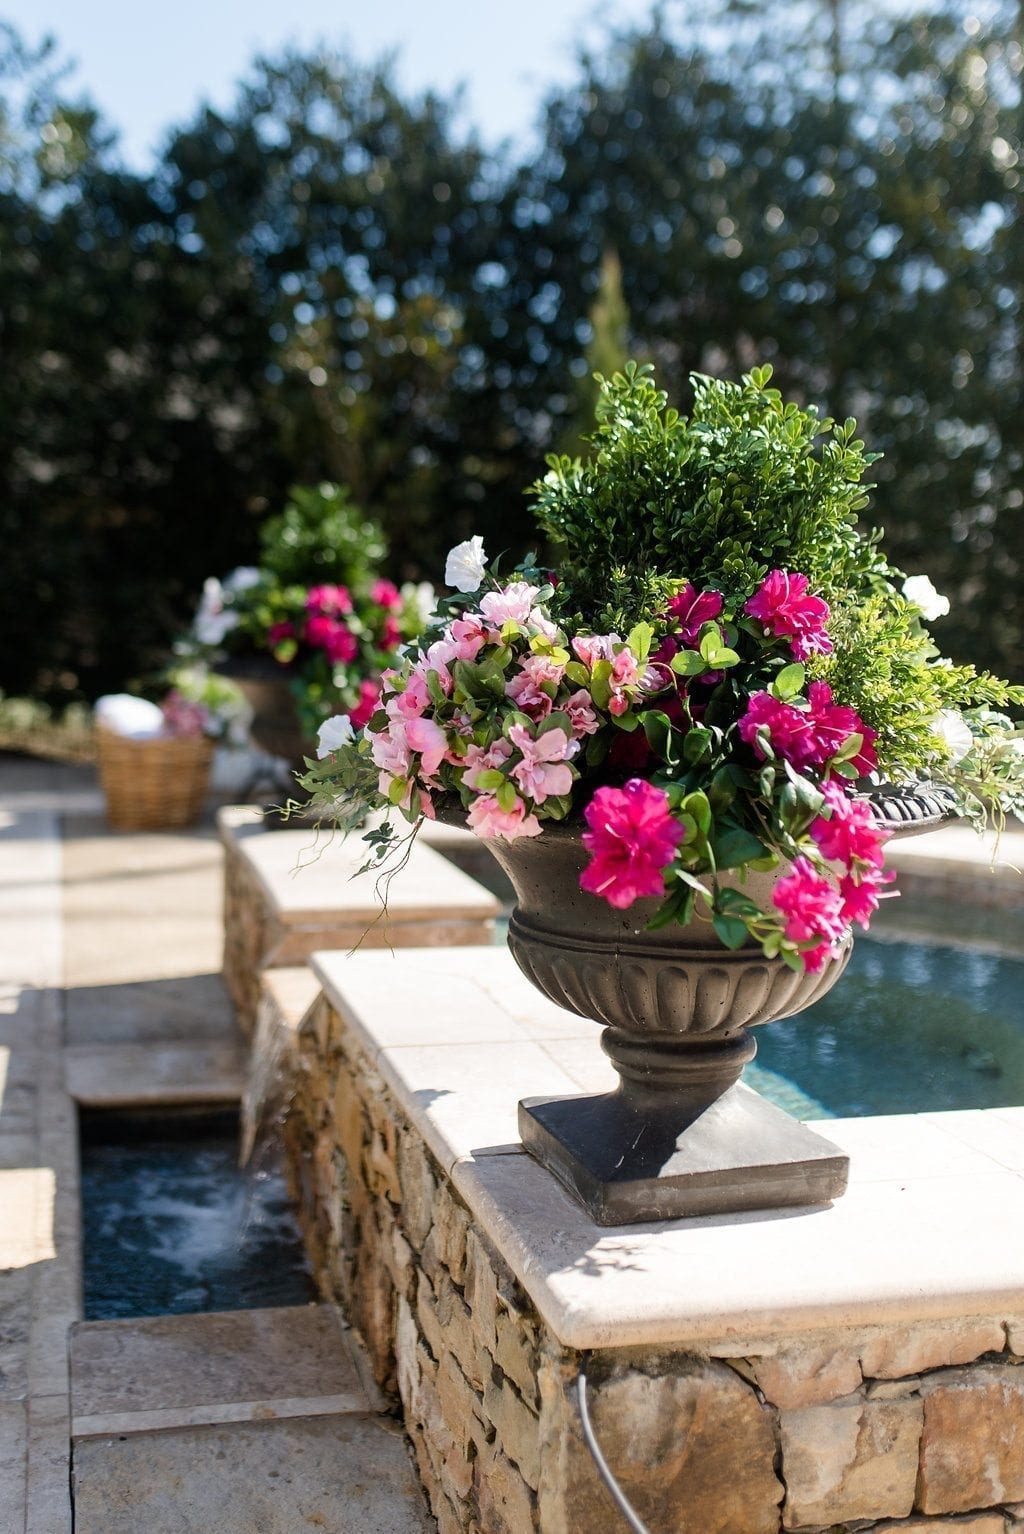 Pool flowers by the spa for gorgeous pink and green color.